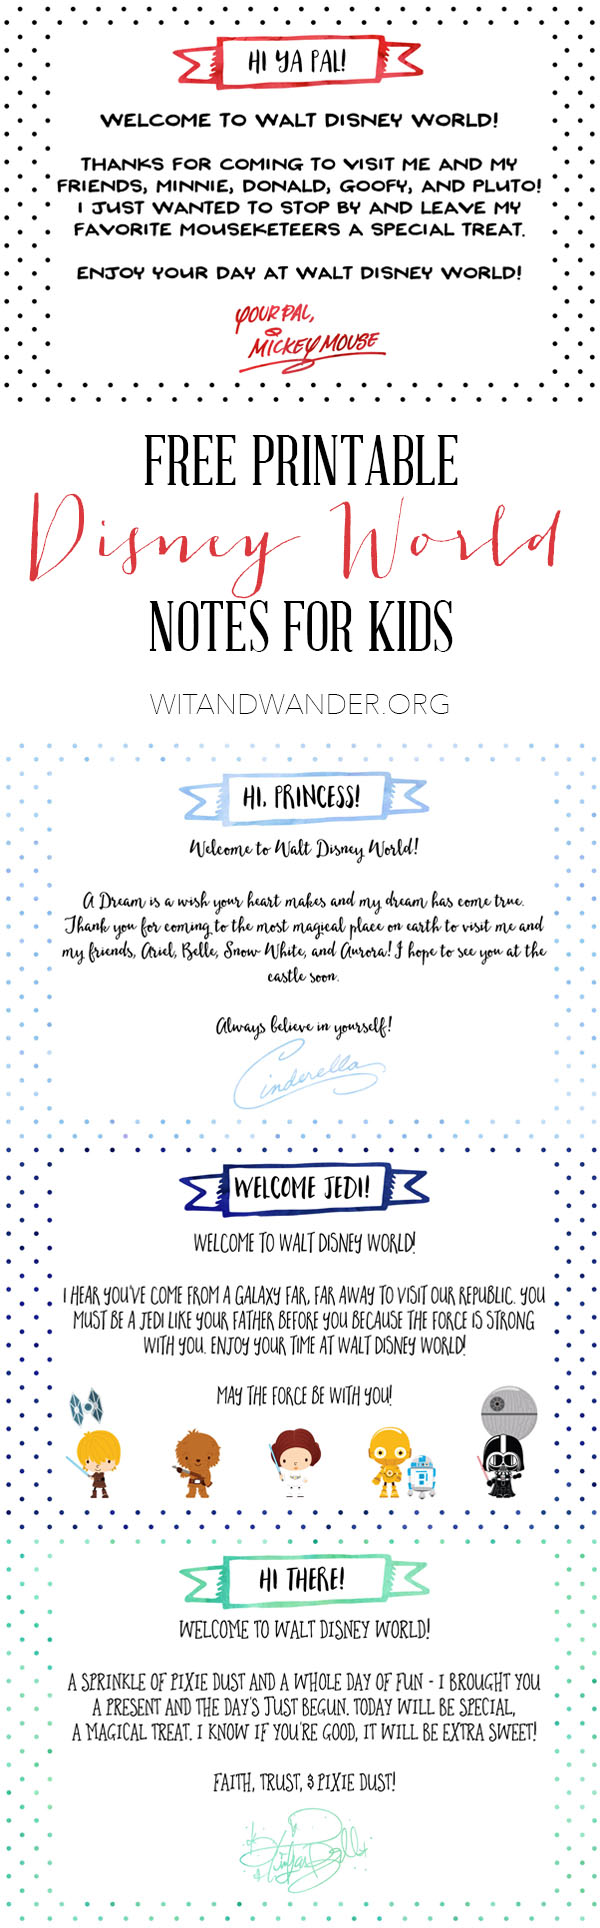 Walt Disney World Free Printables Our Handcrafted Life